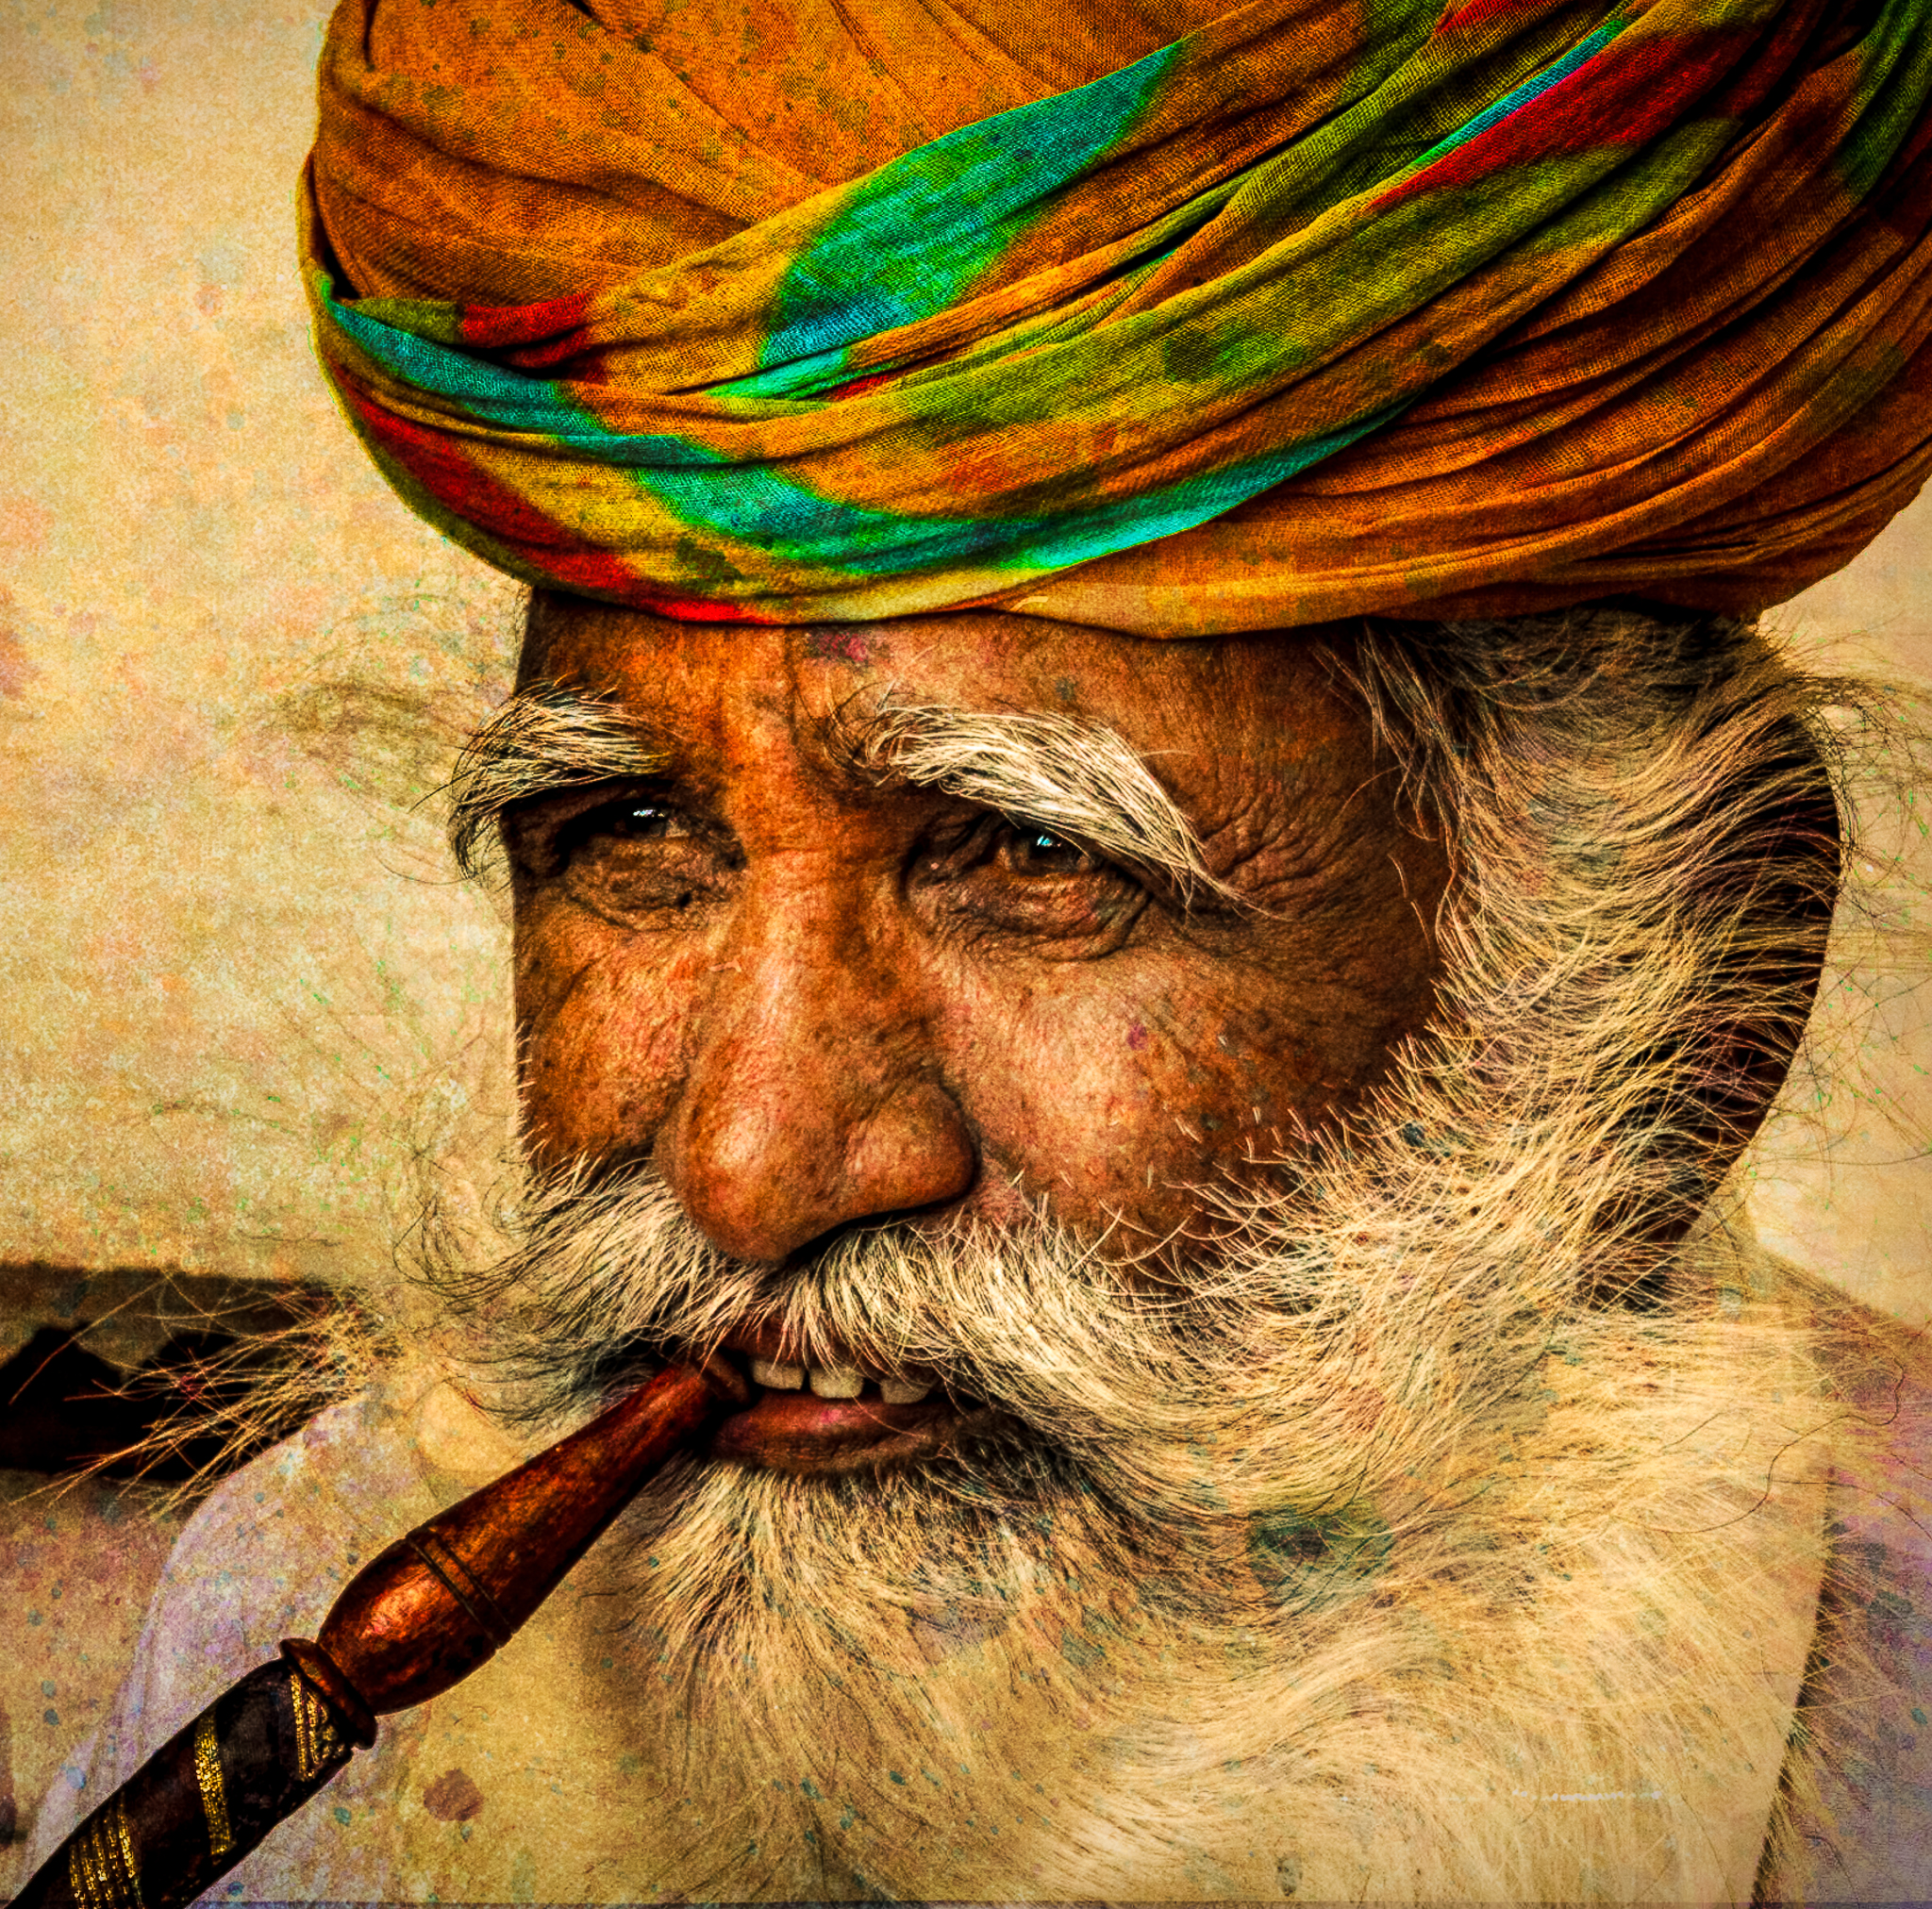 58139D - India Man with Colorful Tur